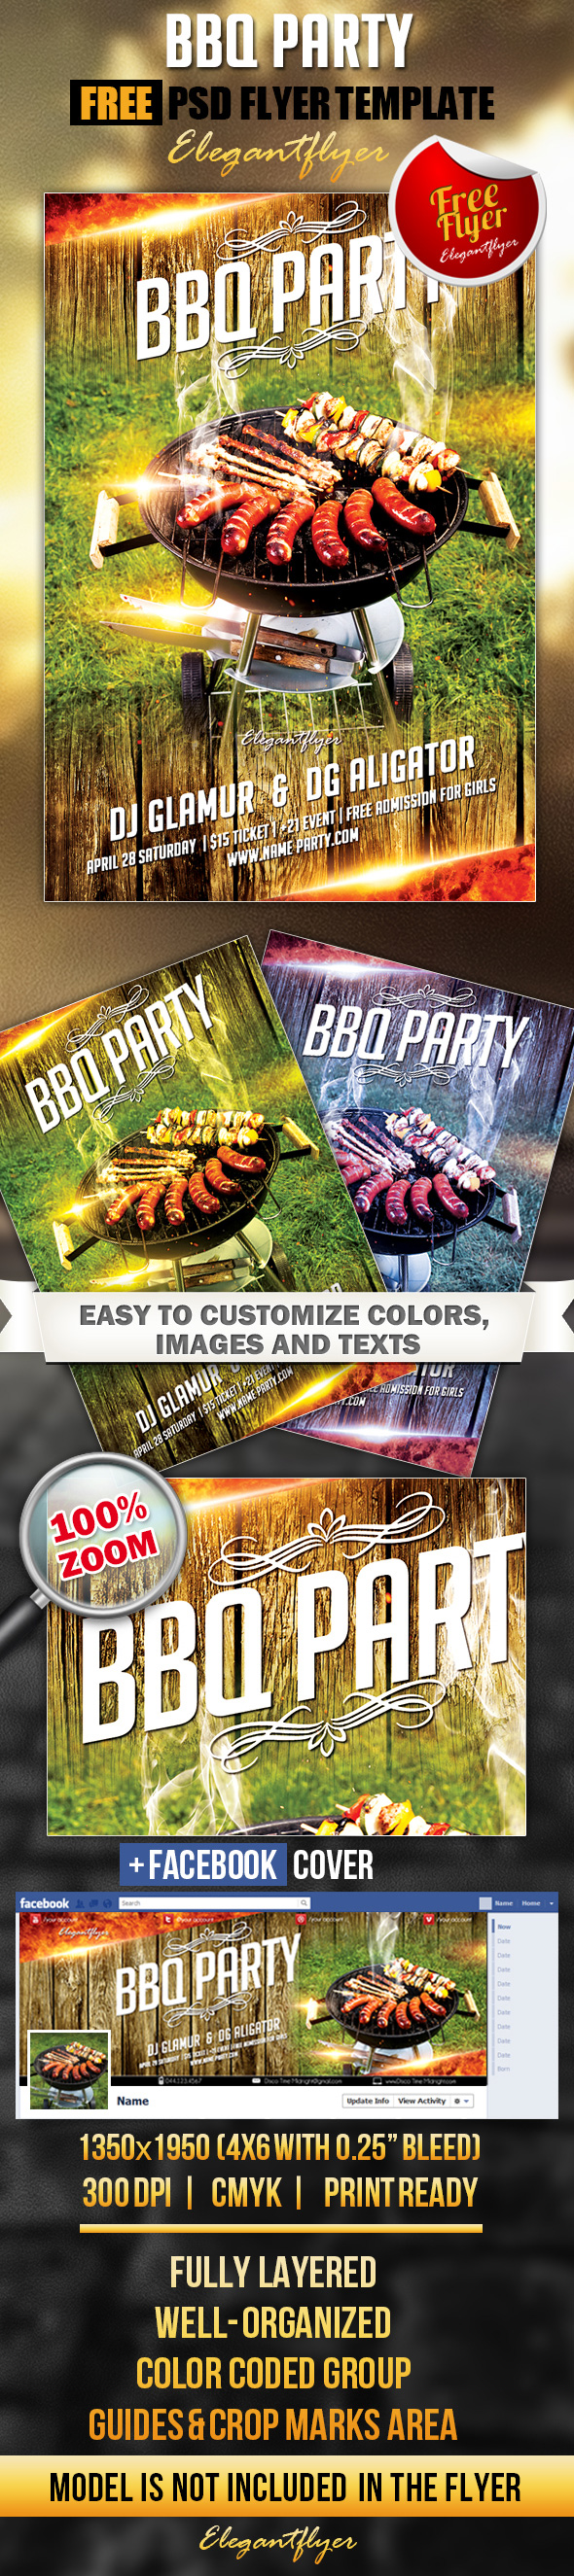 free bbq flyers design - Free Bbq Flyer Template